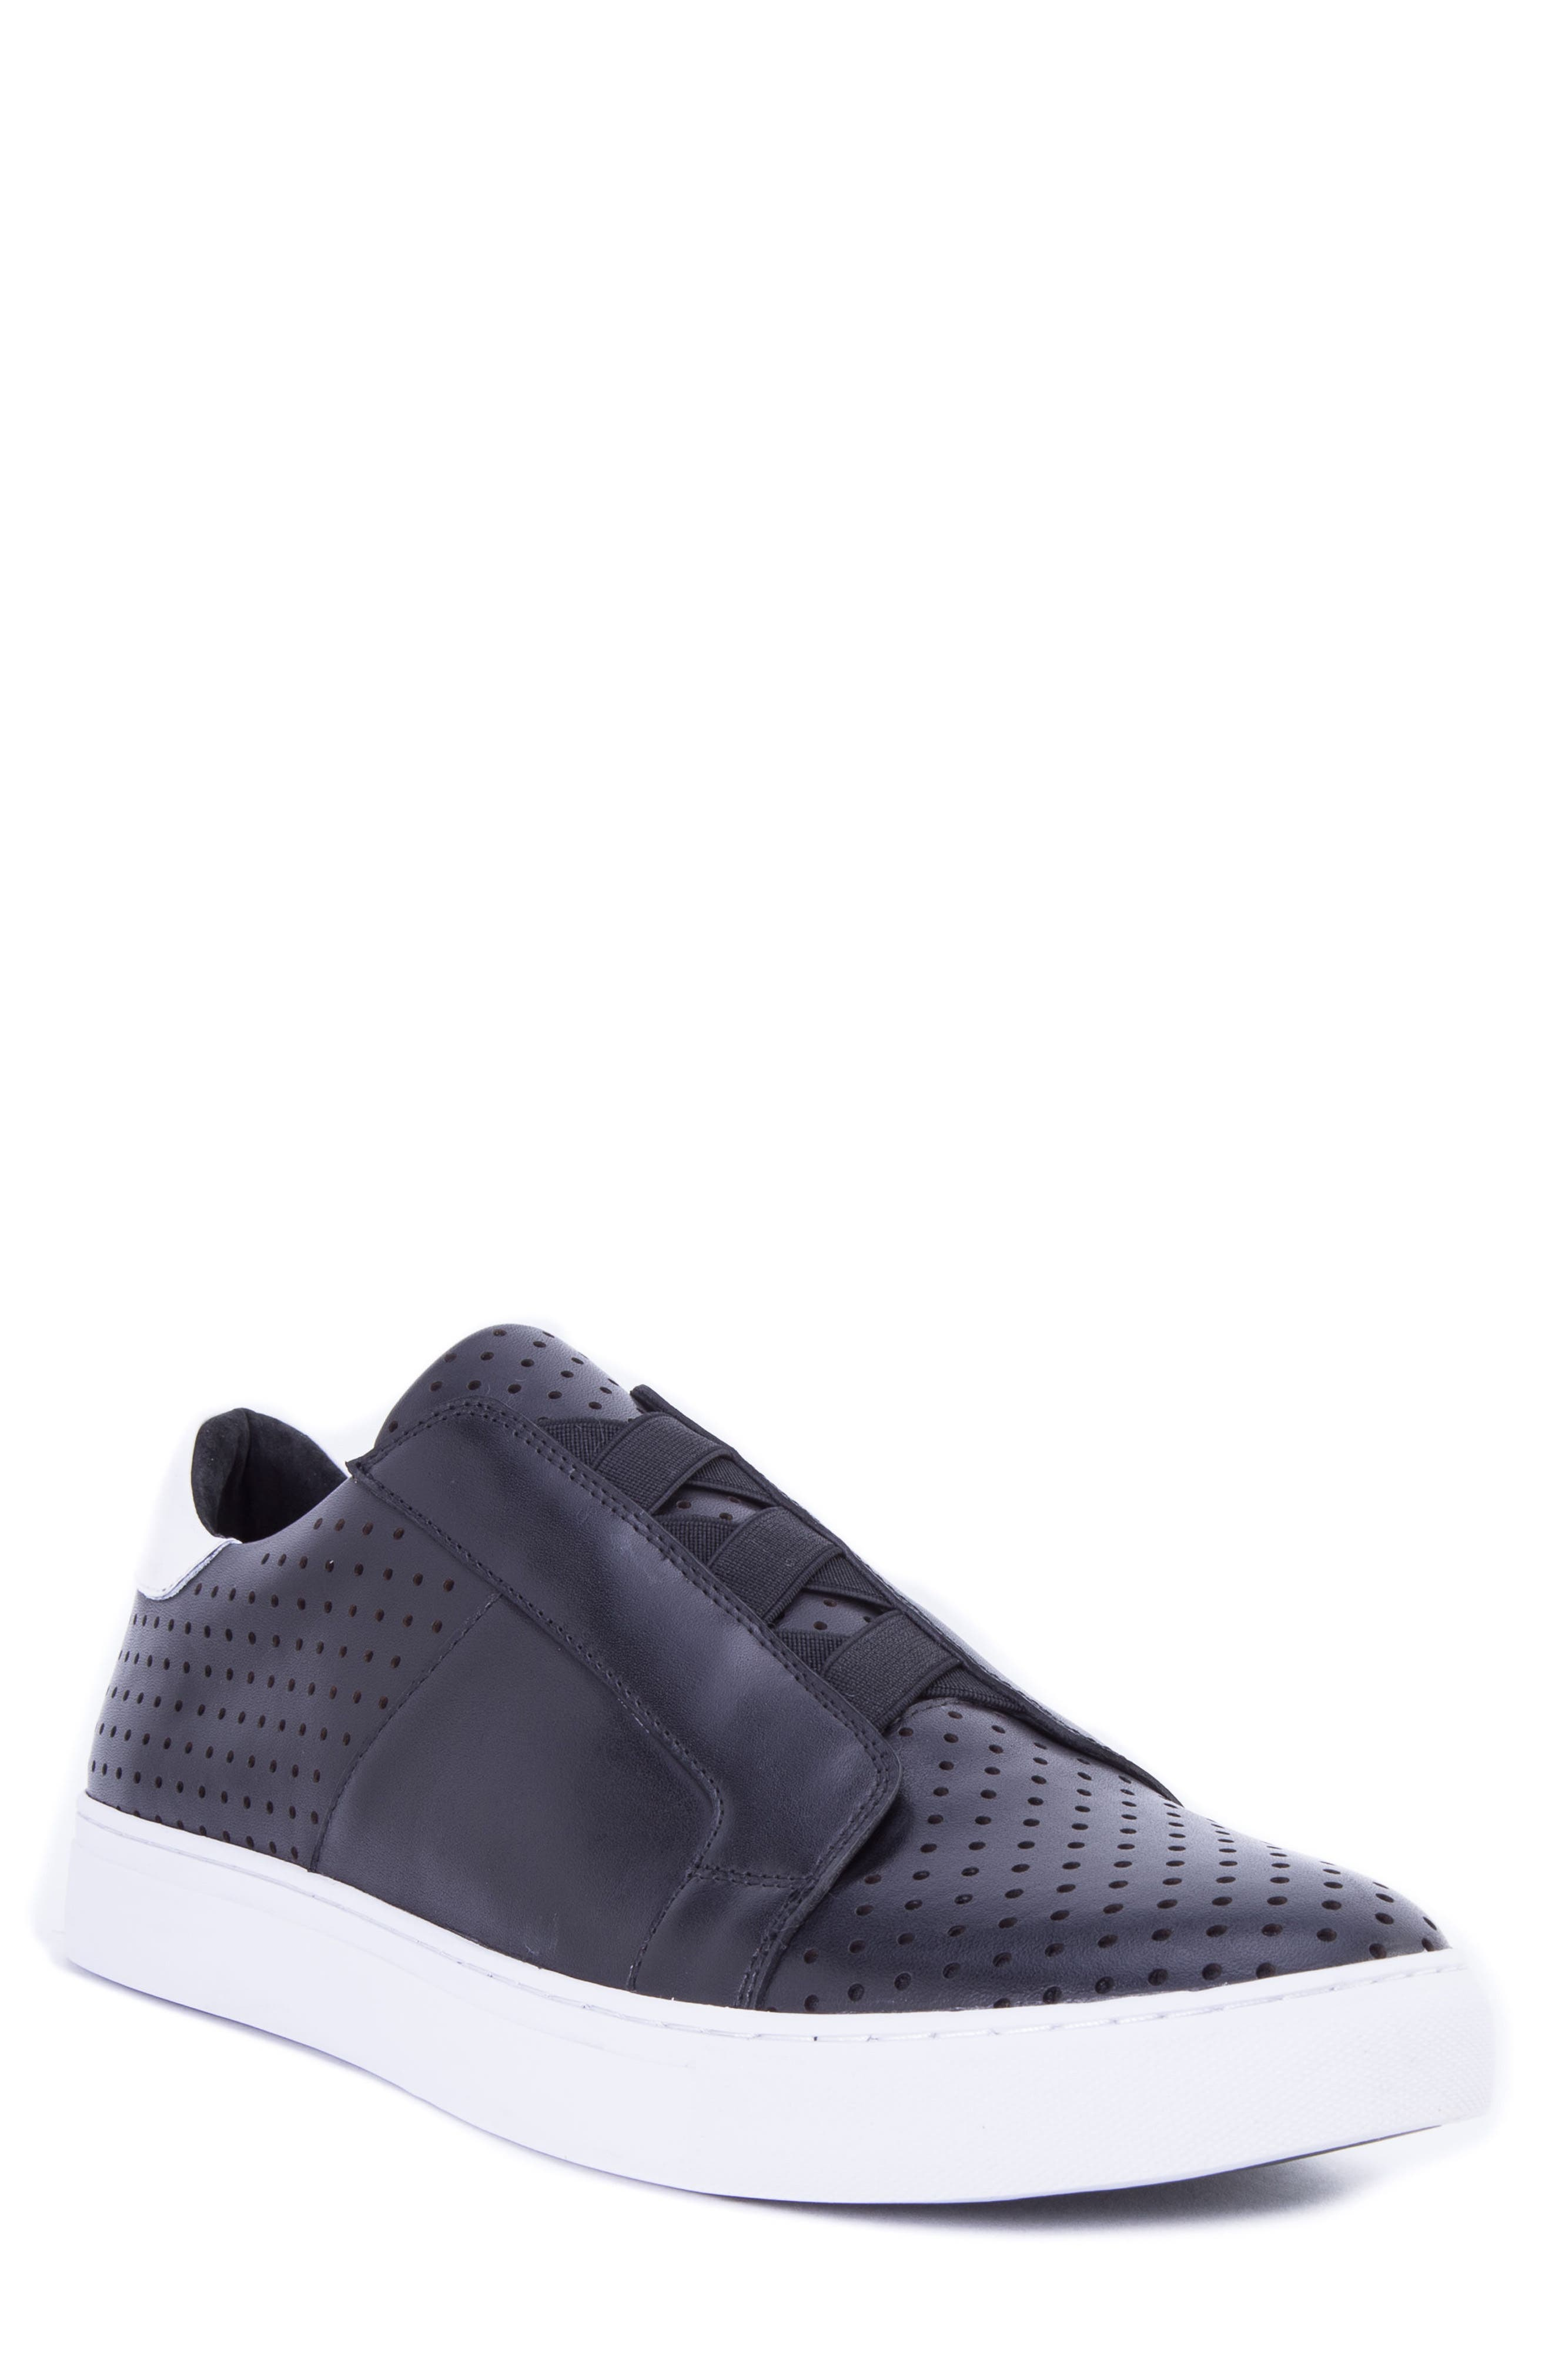 Rowley Perforated Laceless Sneaker,                         Main,                         color, BLACK LEATHER